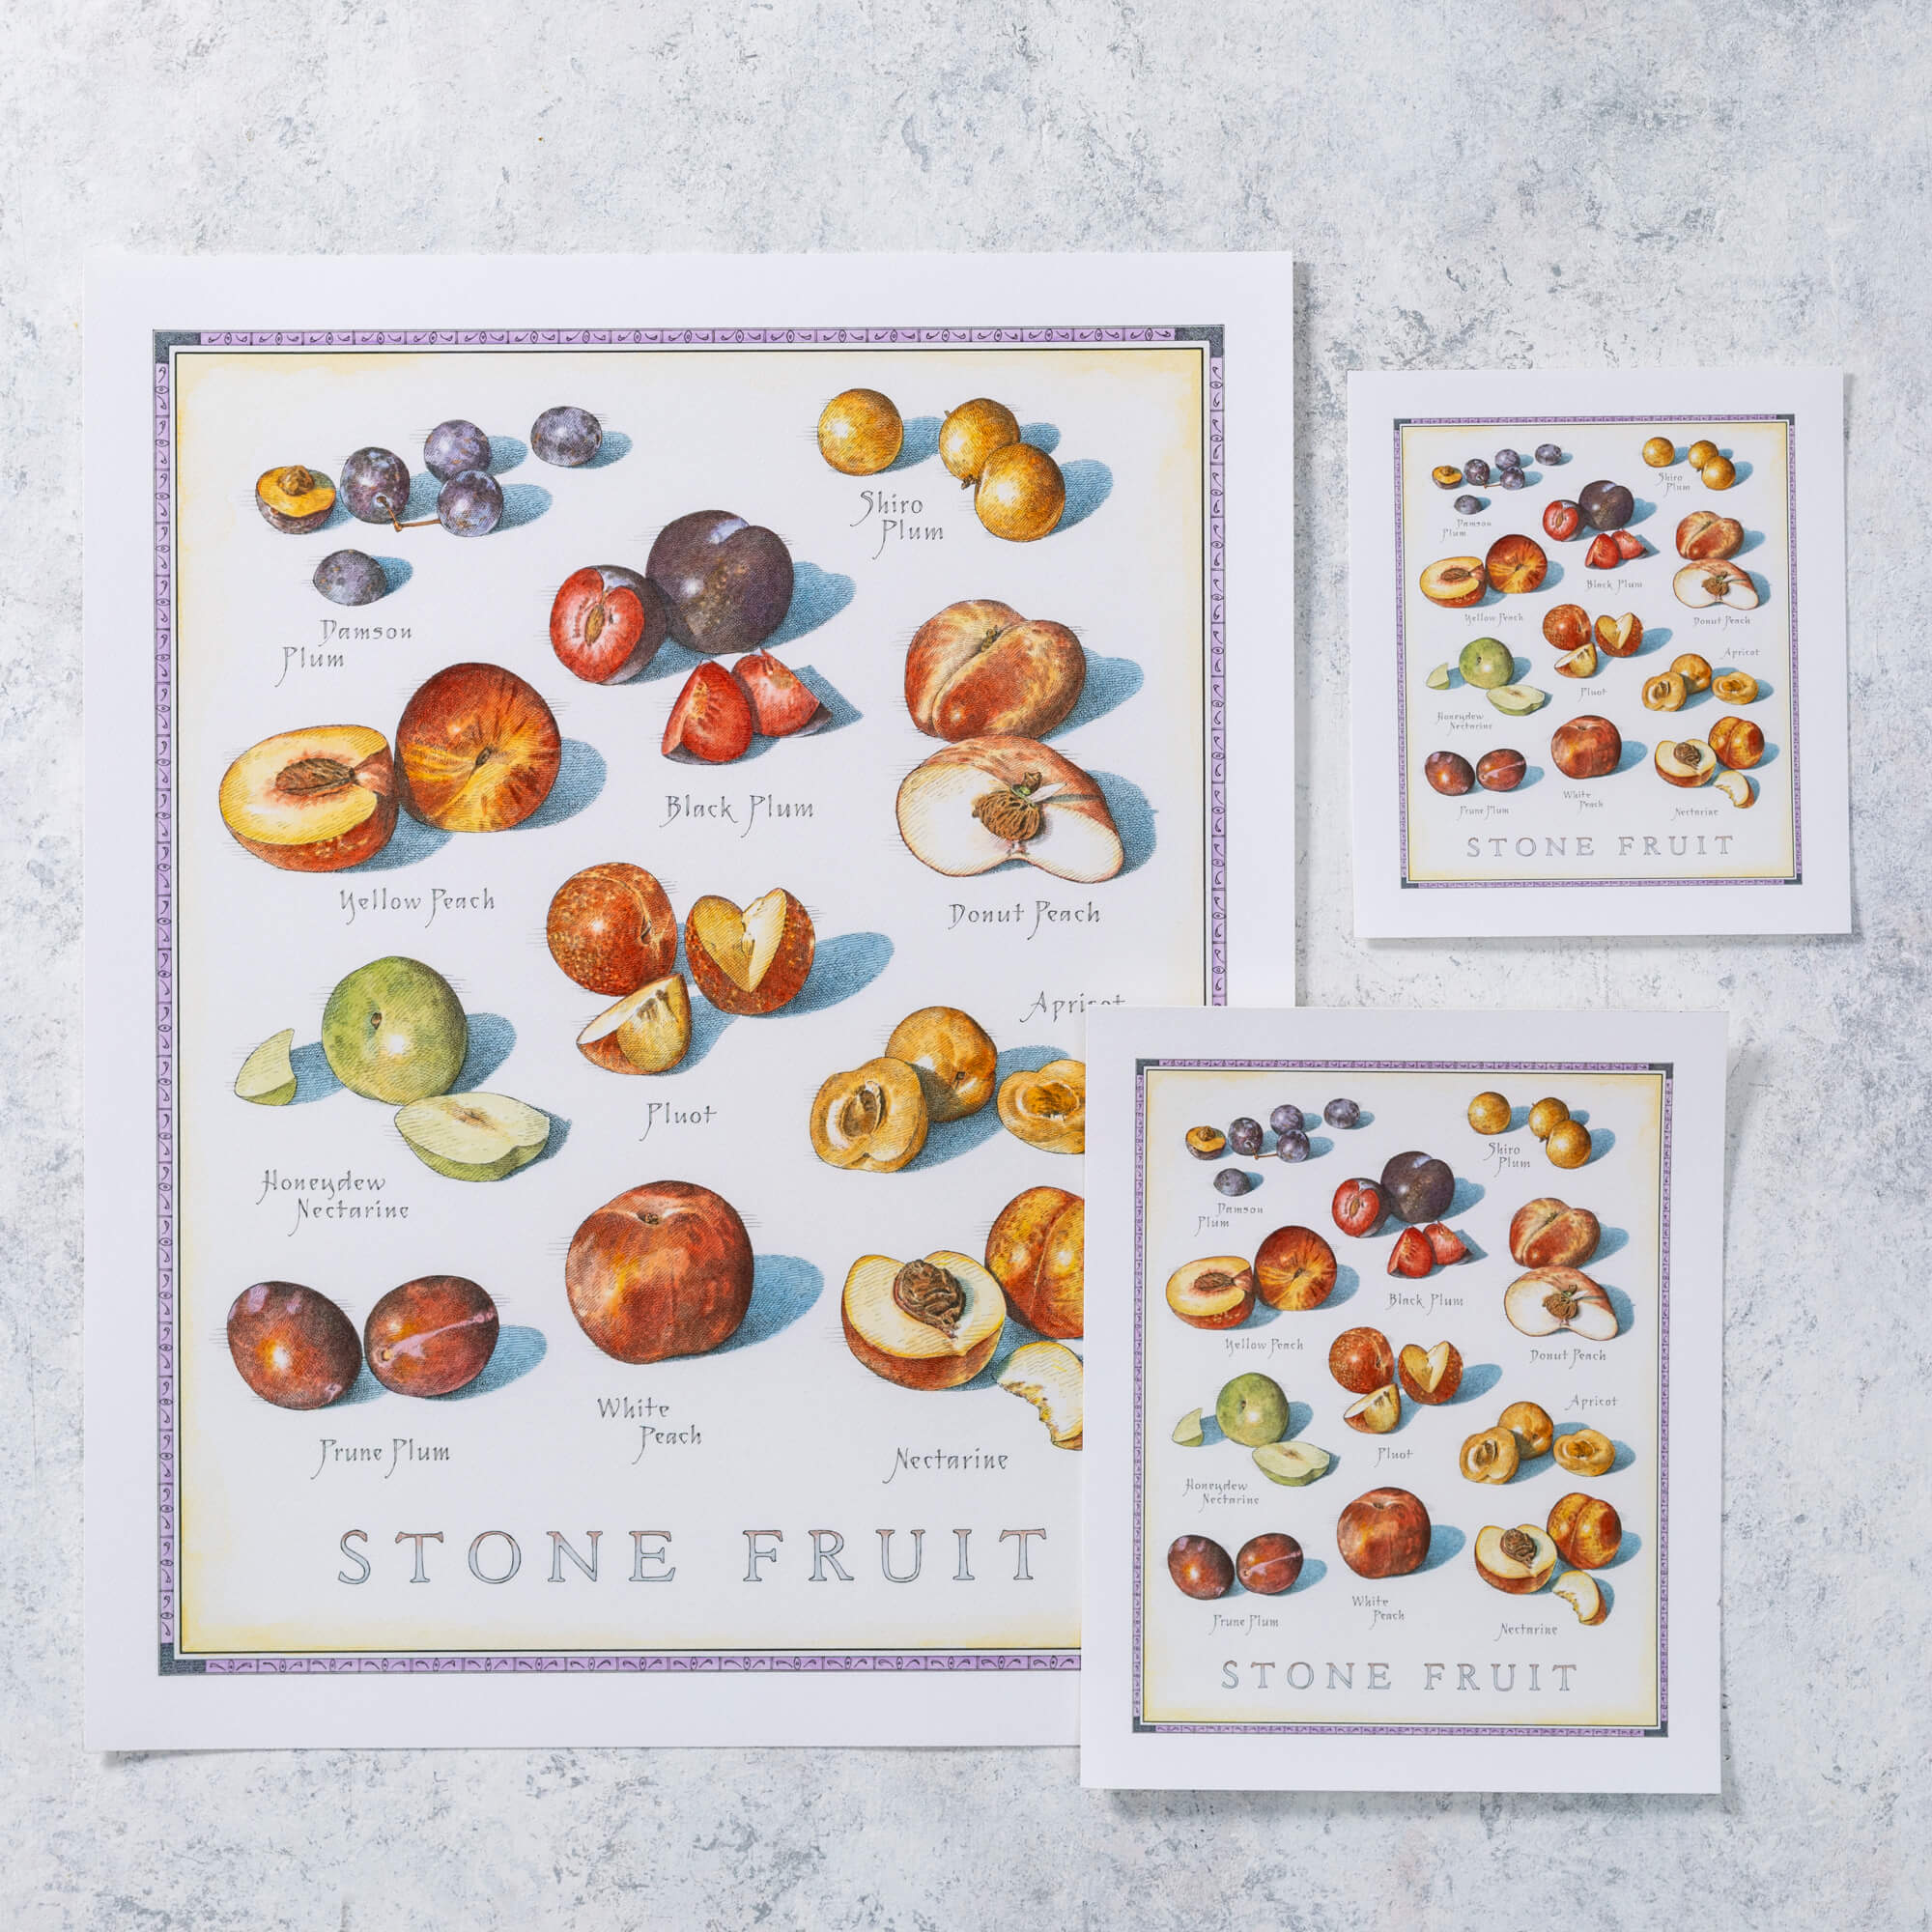 Cook's Illustrated Unframed Print: Stone Fruit